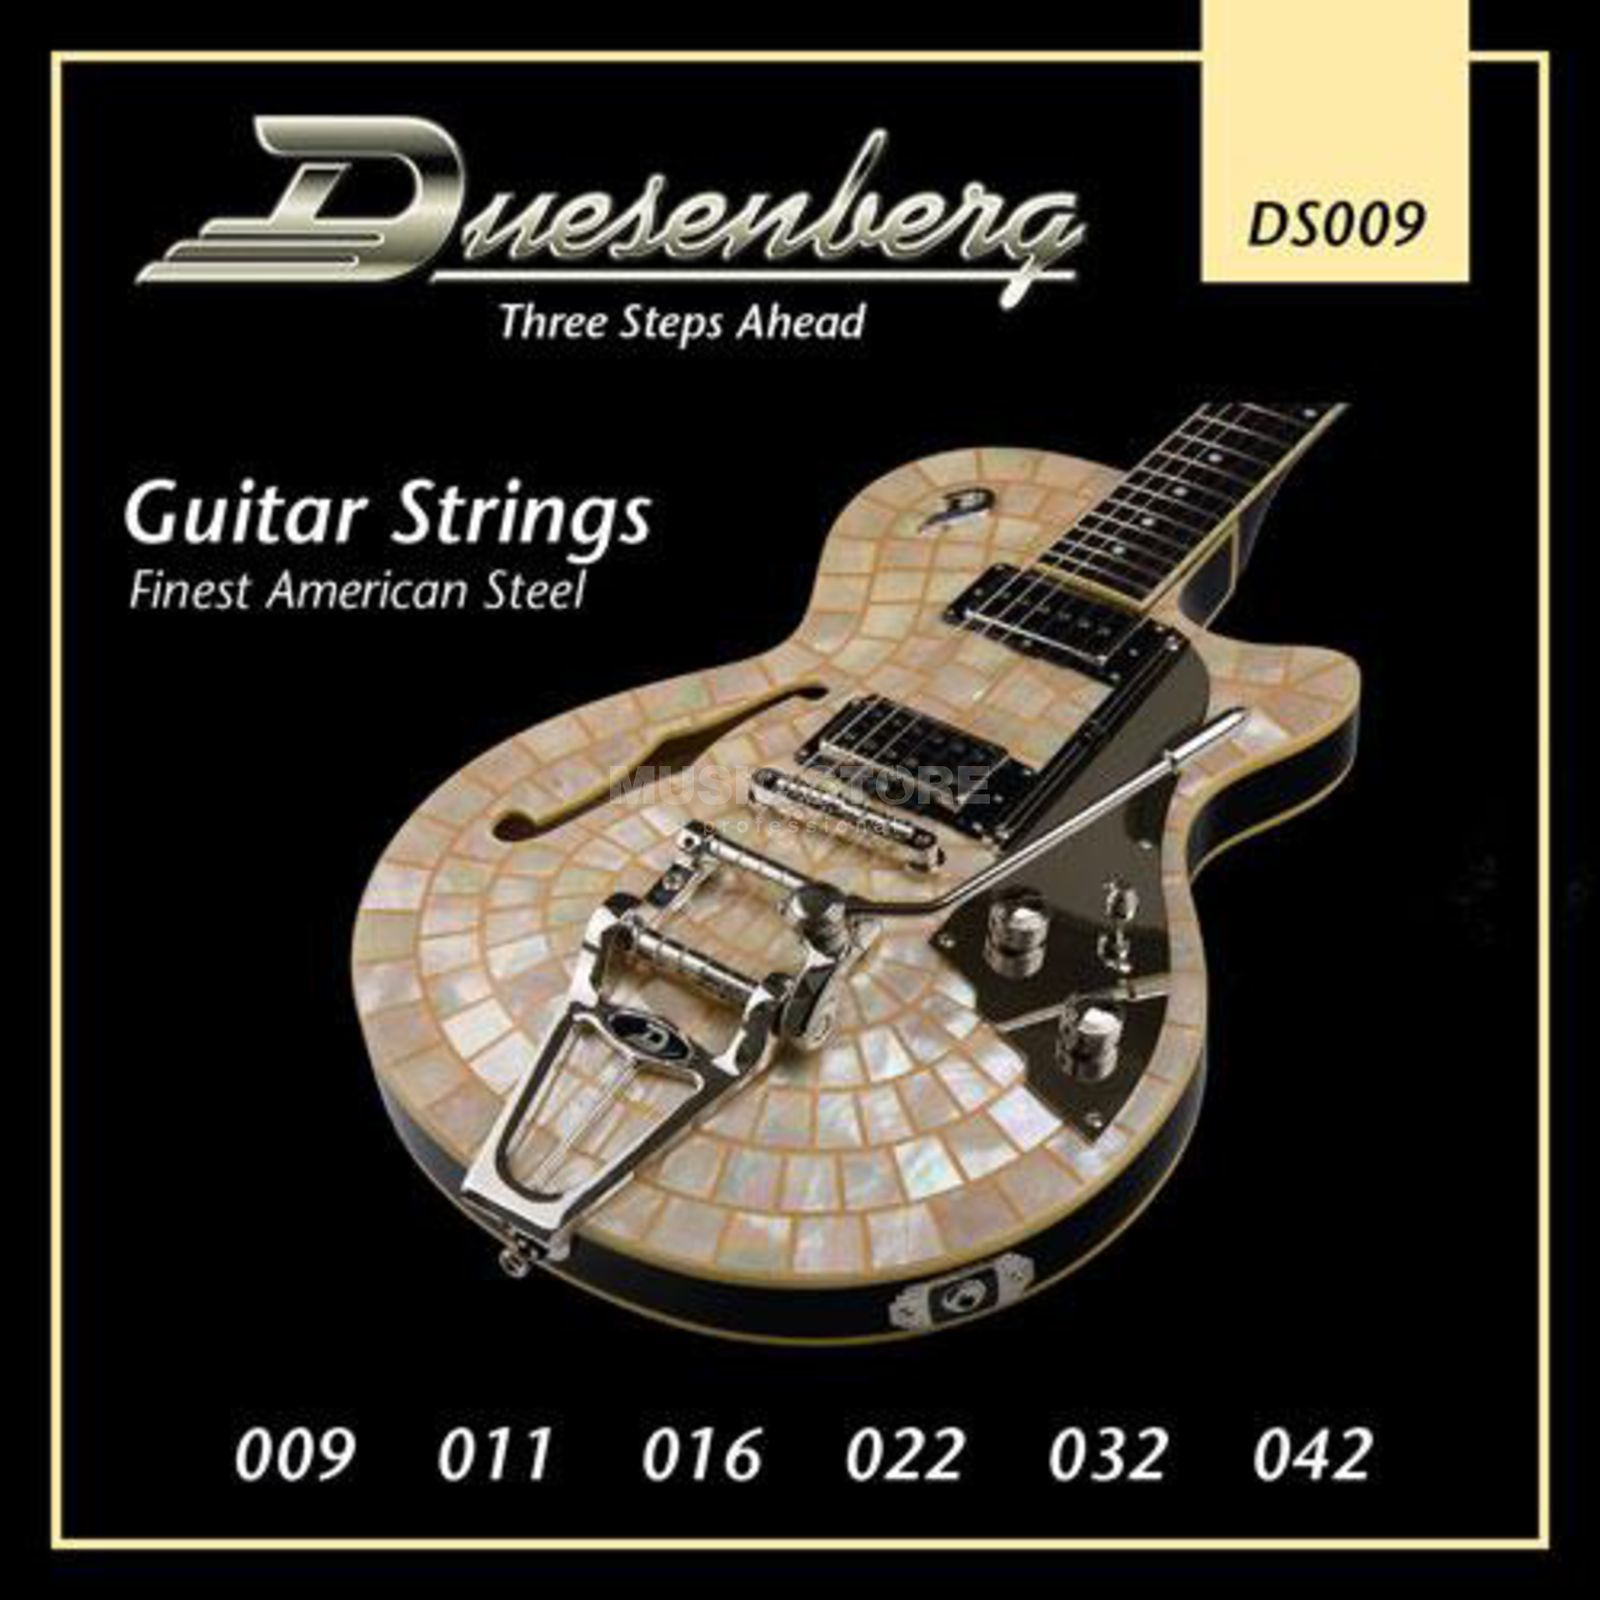 Duesenberg DS009 09-42 Guitar Strings Nickel Wound Produktbillede